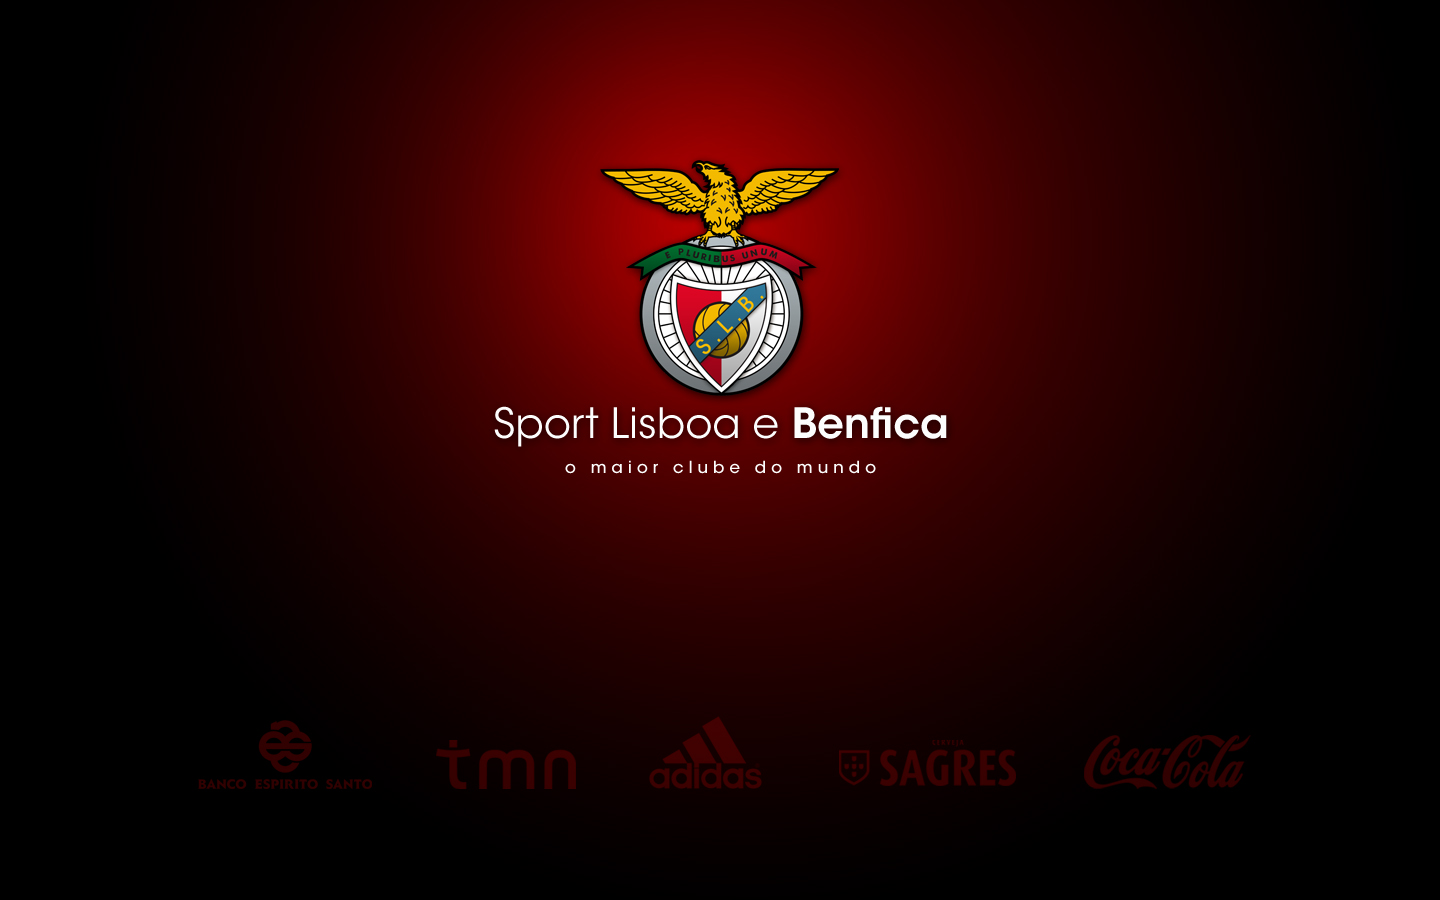 1440x900 - S.L. Benfica Wallpapers 3